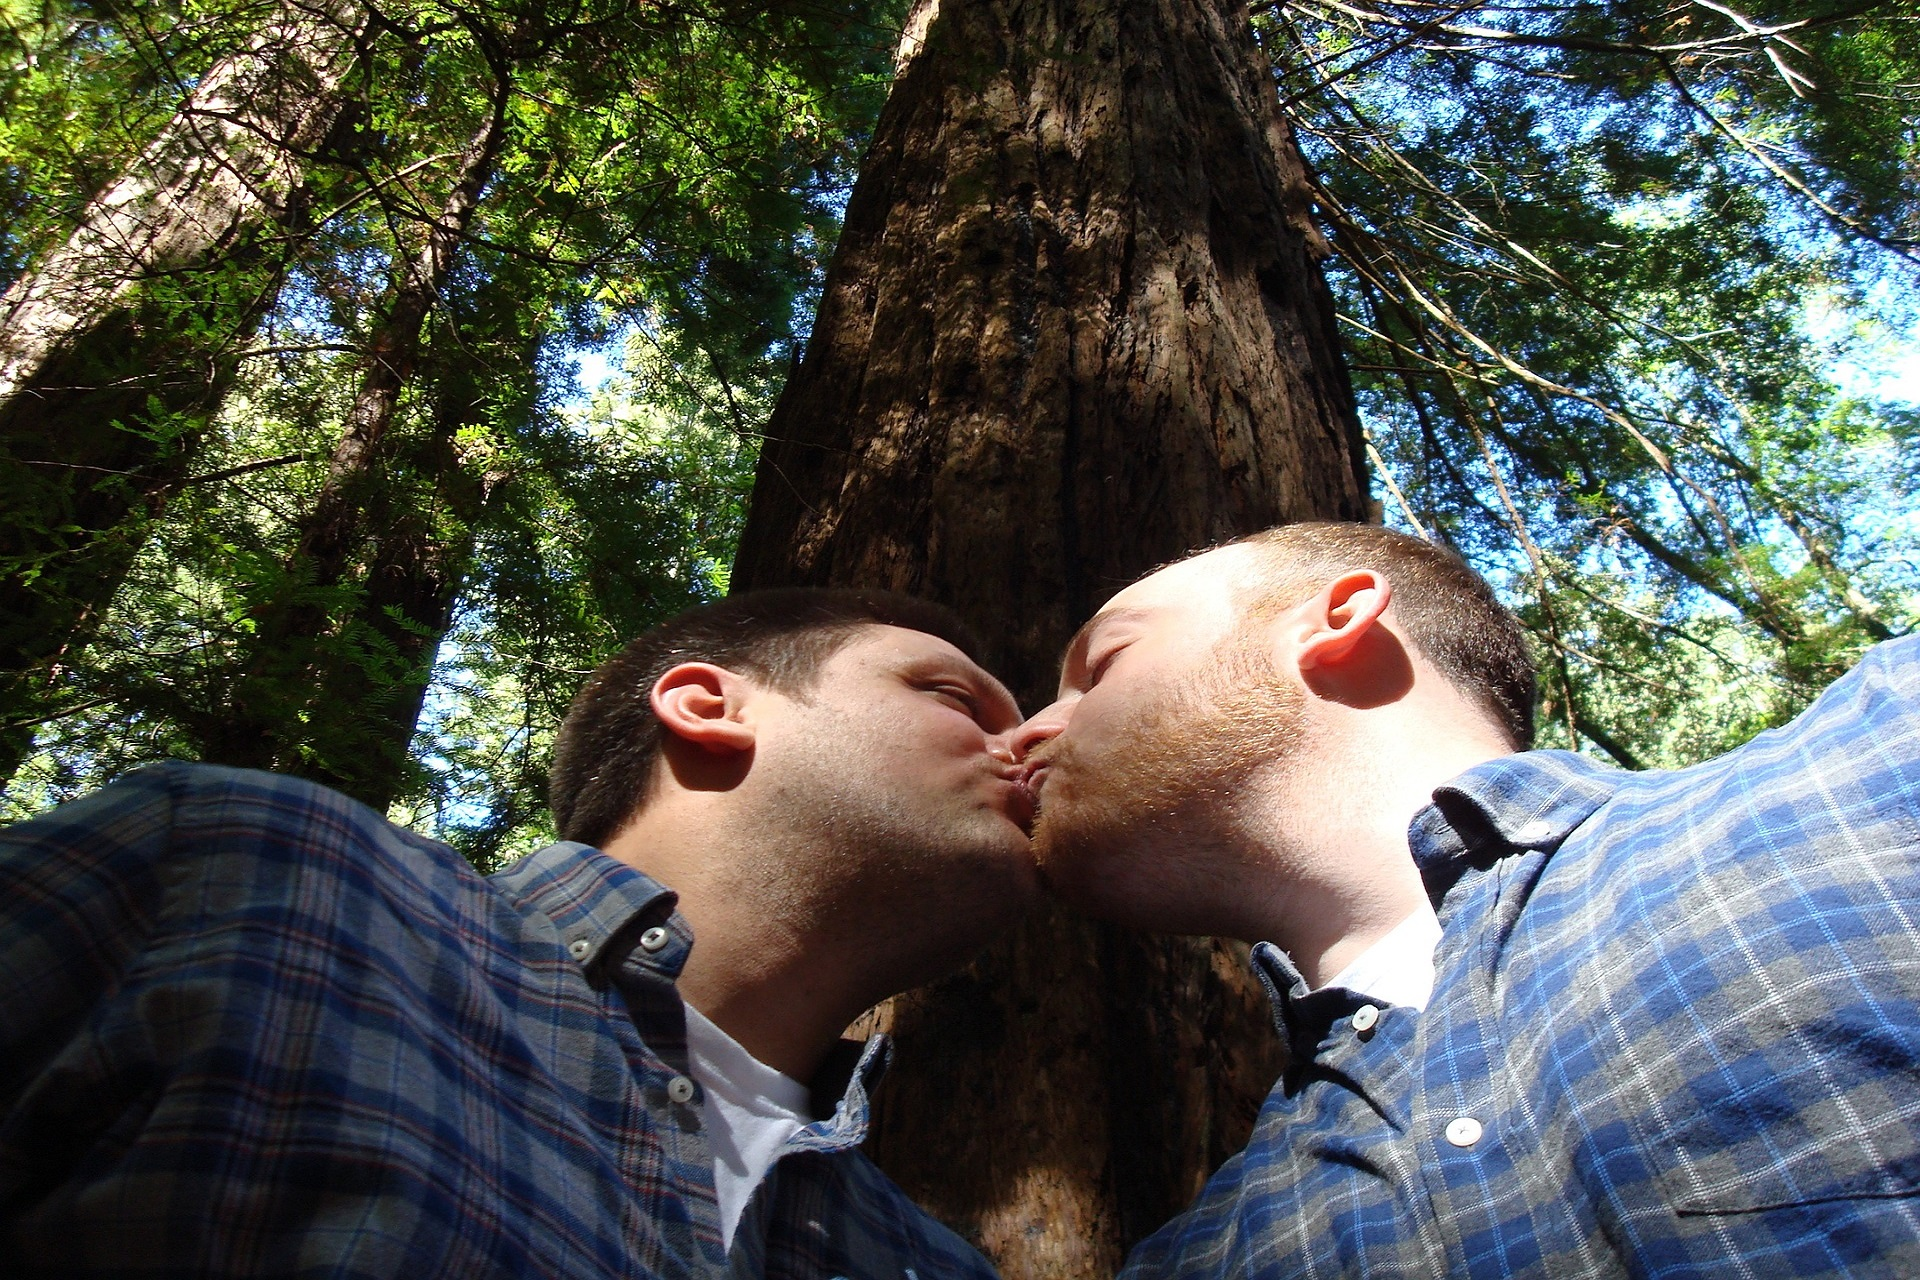 gay love spell caster united states of america, USA